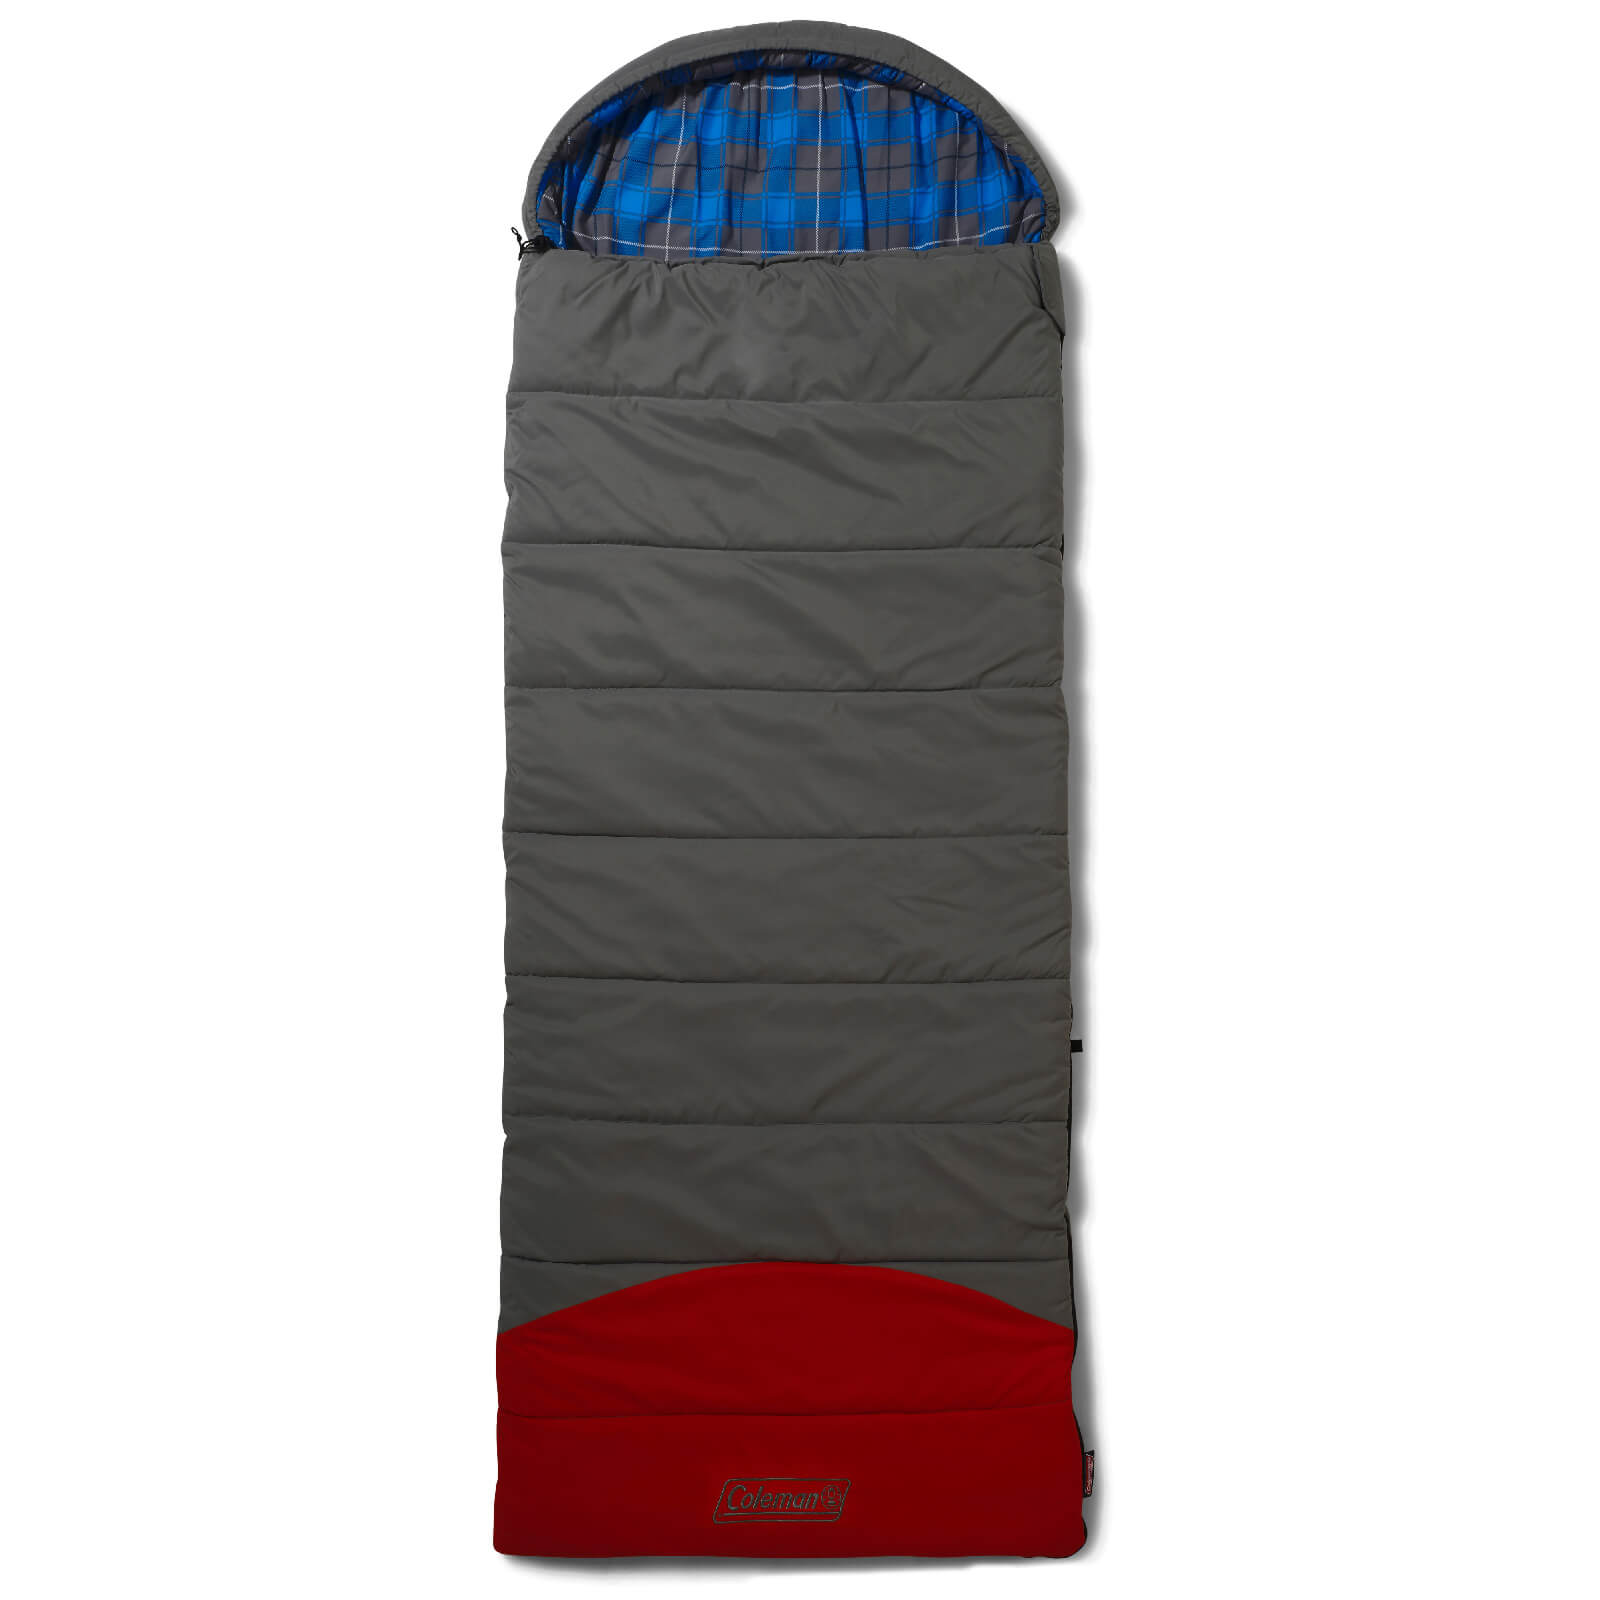 Coleman Comfort Basalt Sleeping Bag - Grey/Red - Single